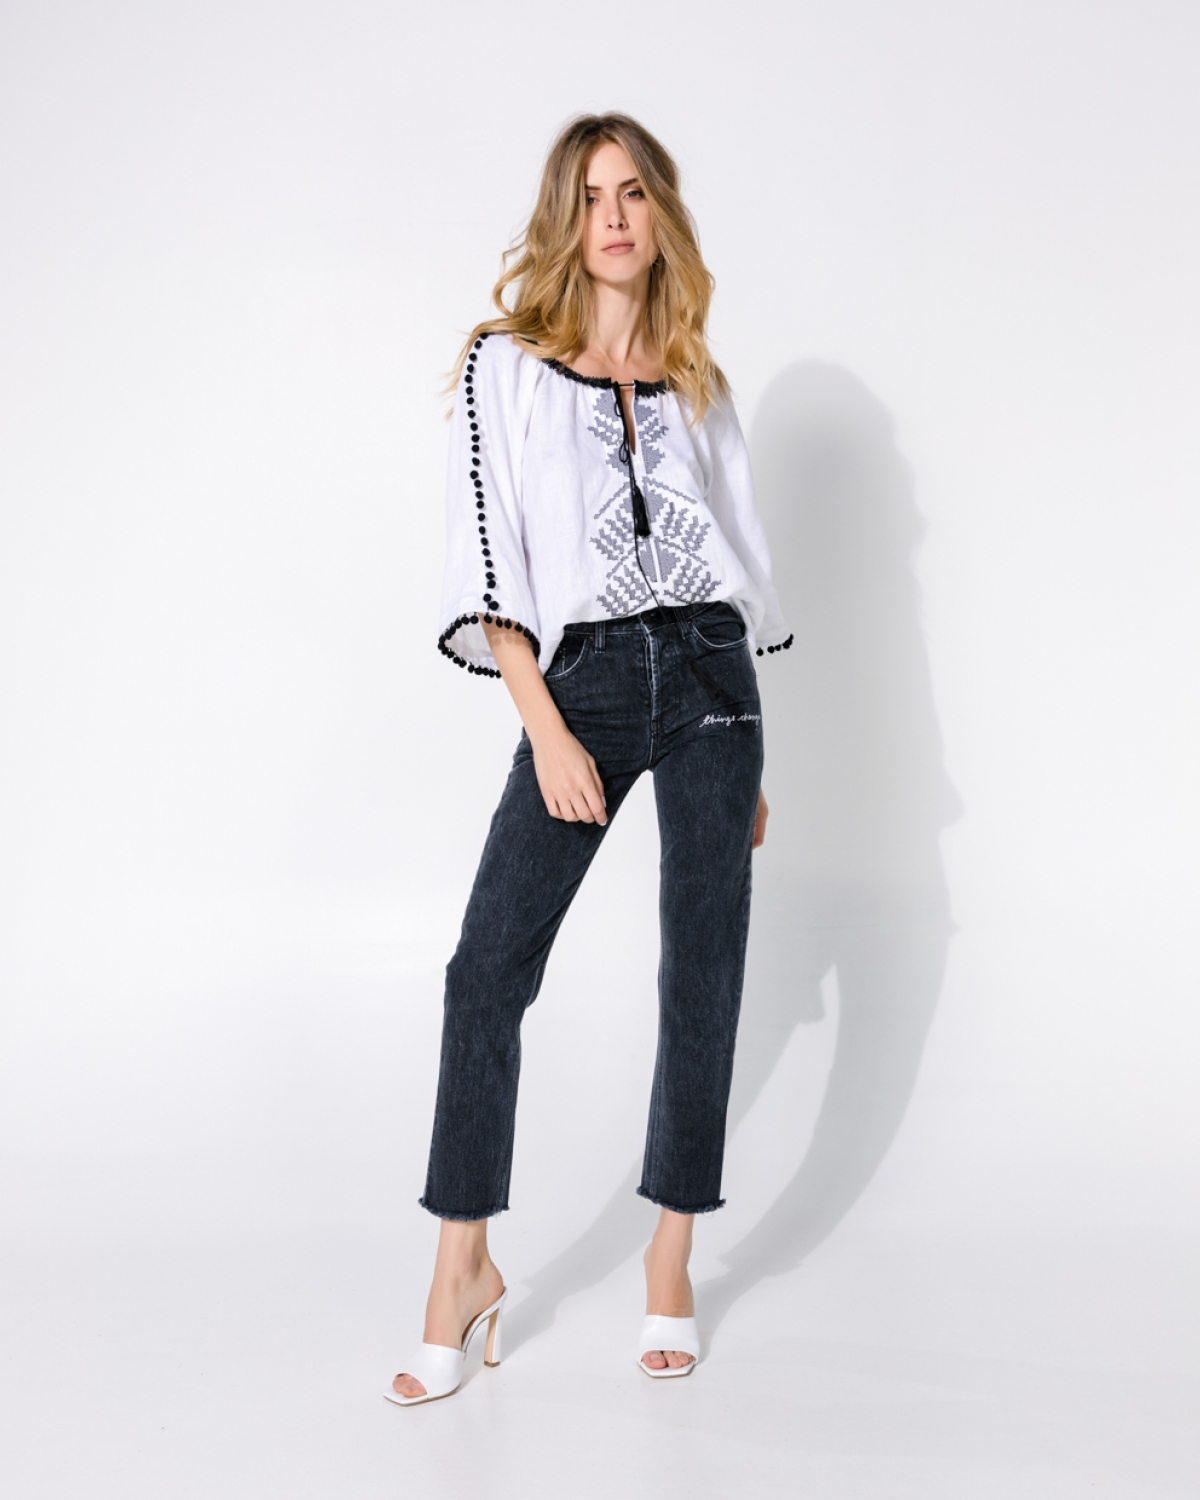 Kelly Black Pearl Things Change Jeans